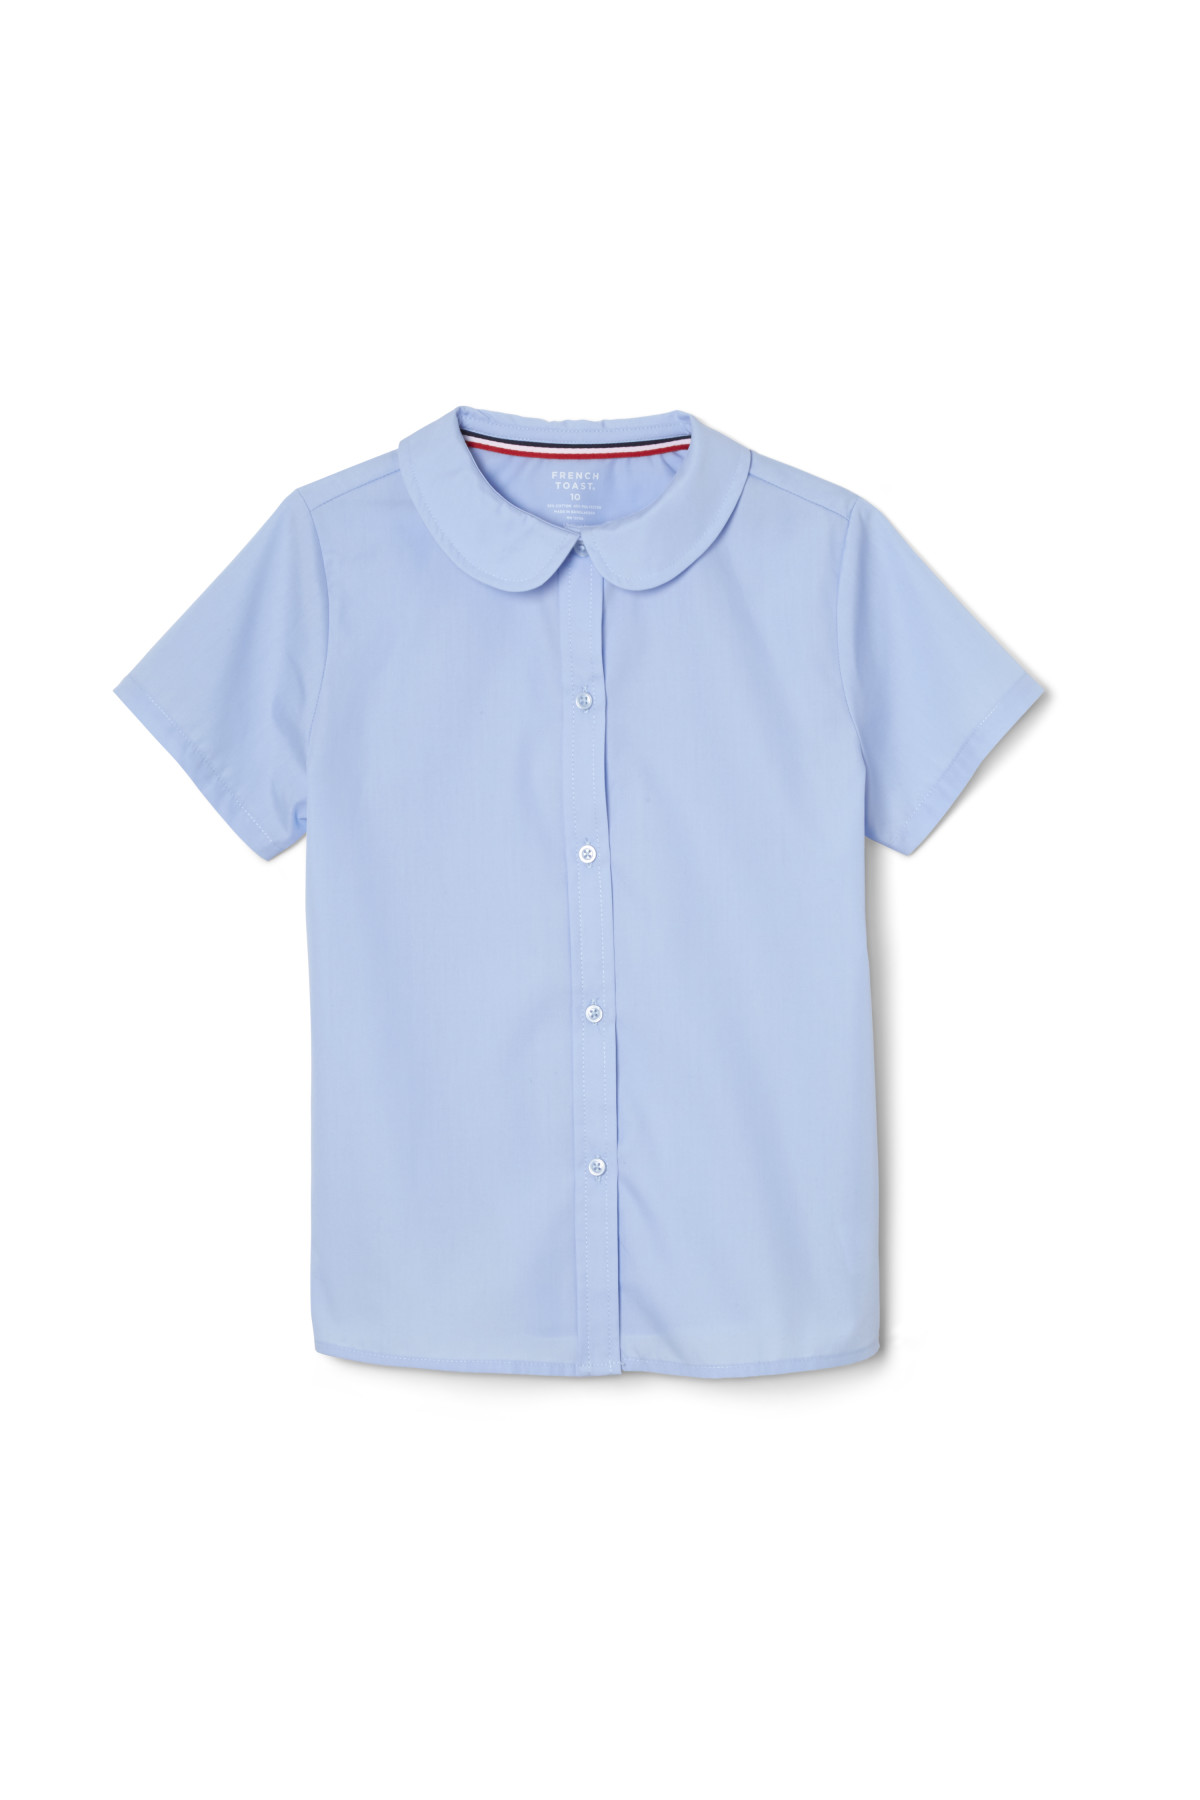 533dc269ac3bc9 Blouses - Girls School Uniforms | French Toast - French Toast